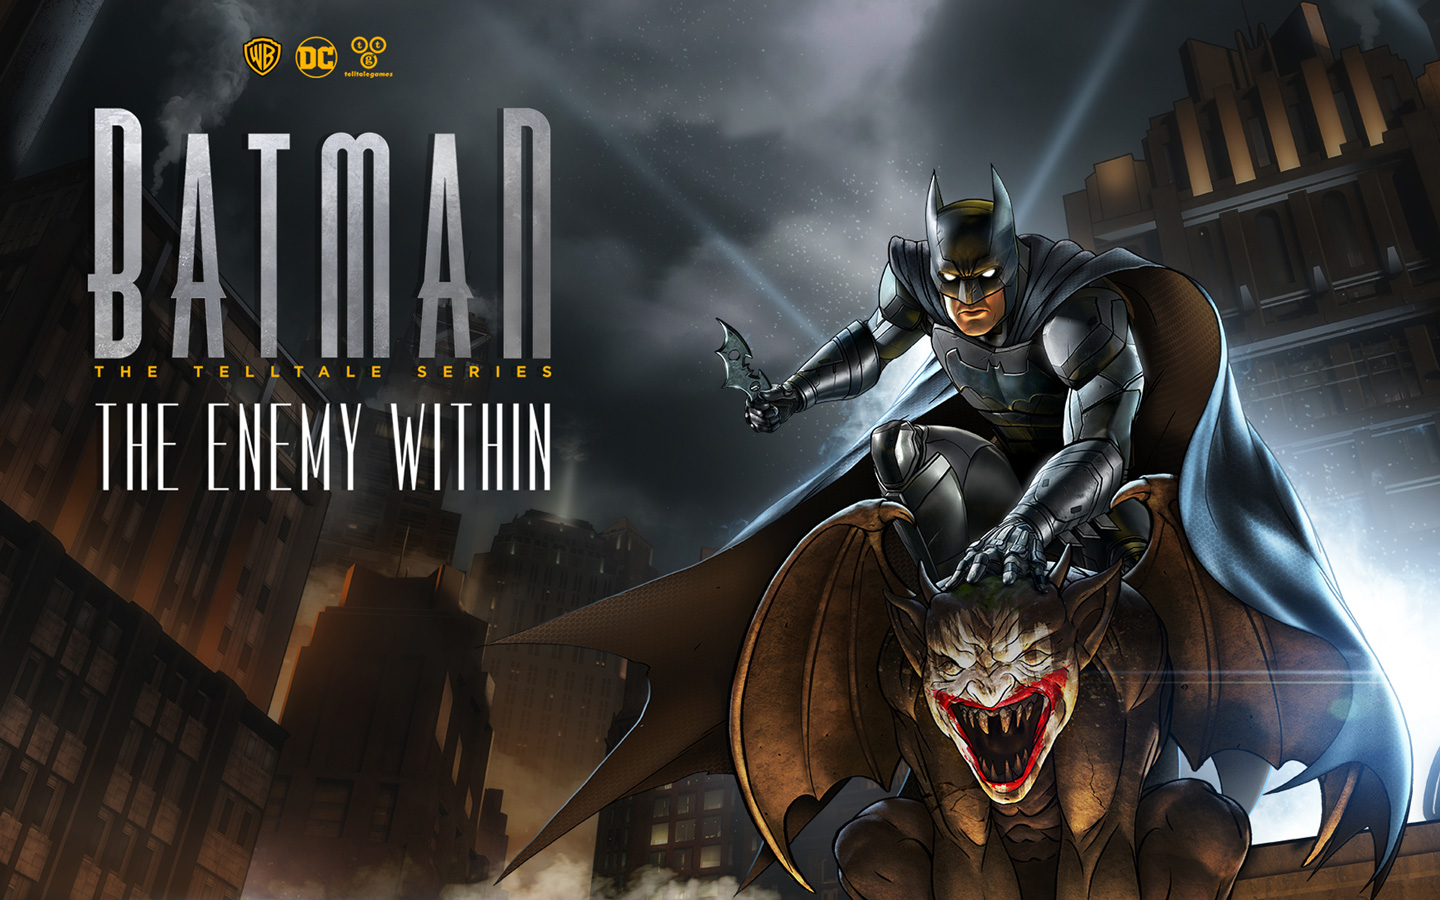 Batman: The Enemy Within - The Telltale Series Wallpaper in 1440x900